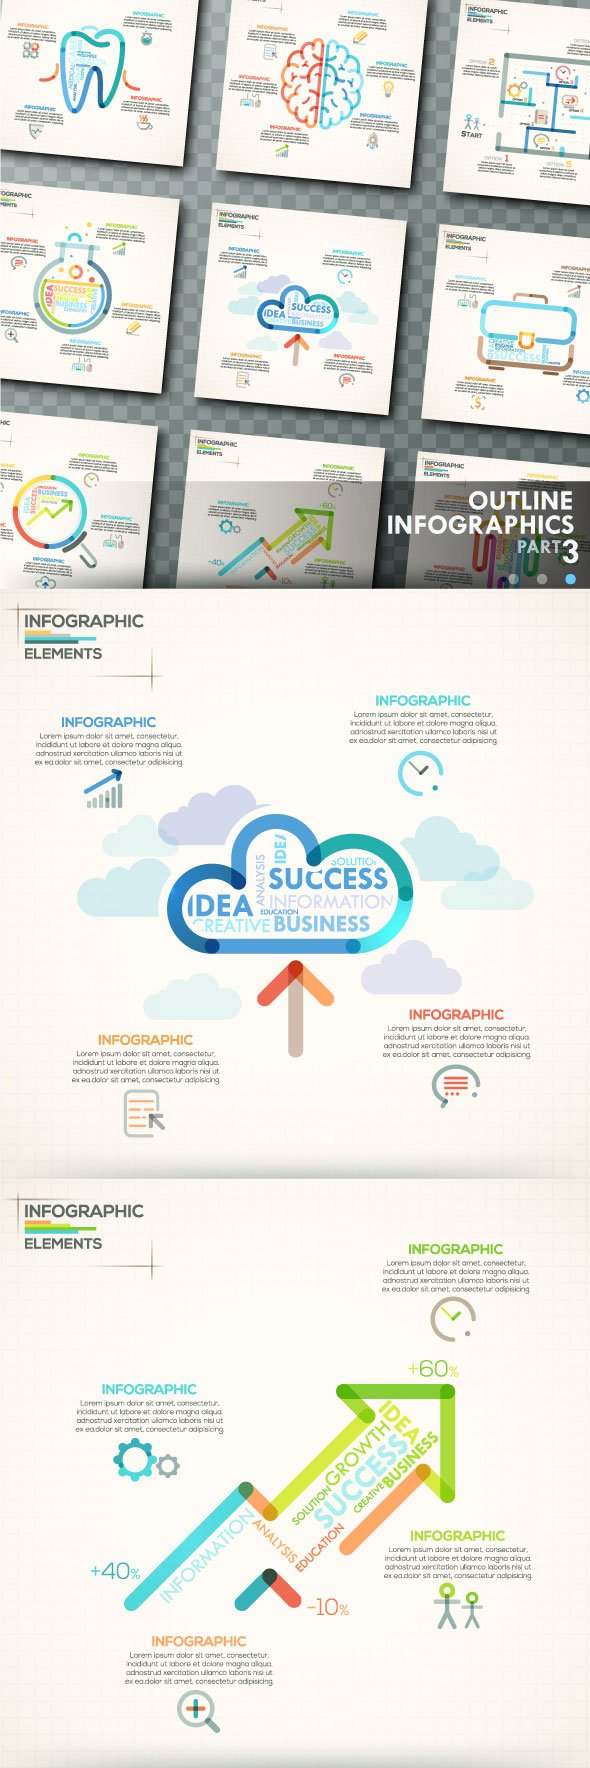 Outline Infographics Template